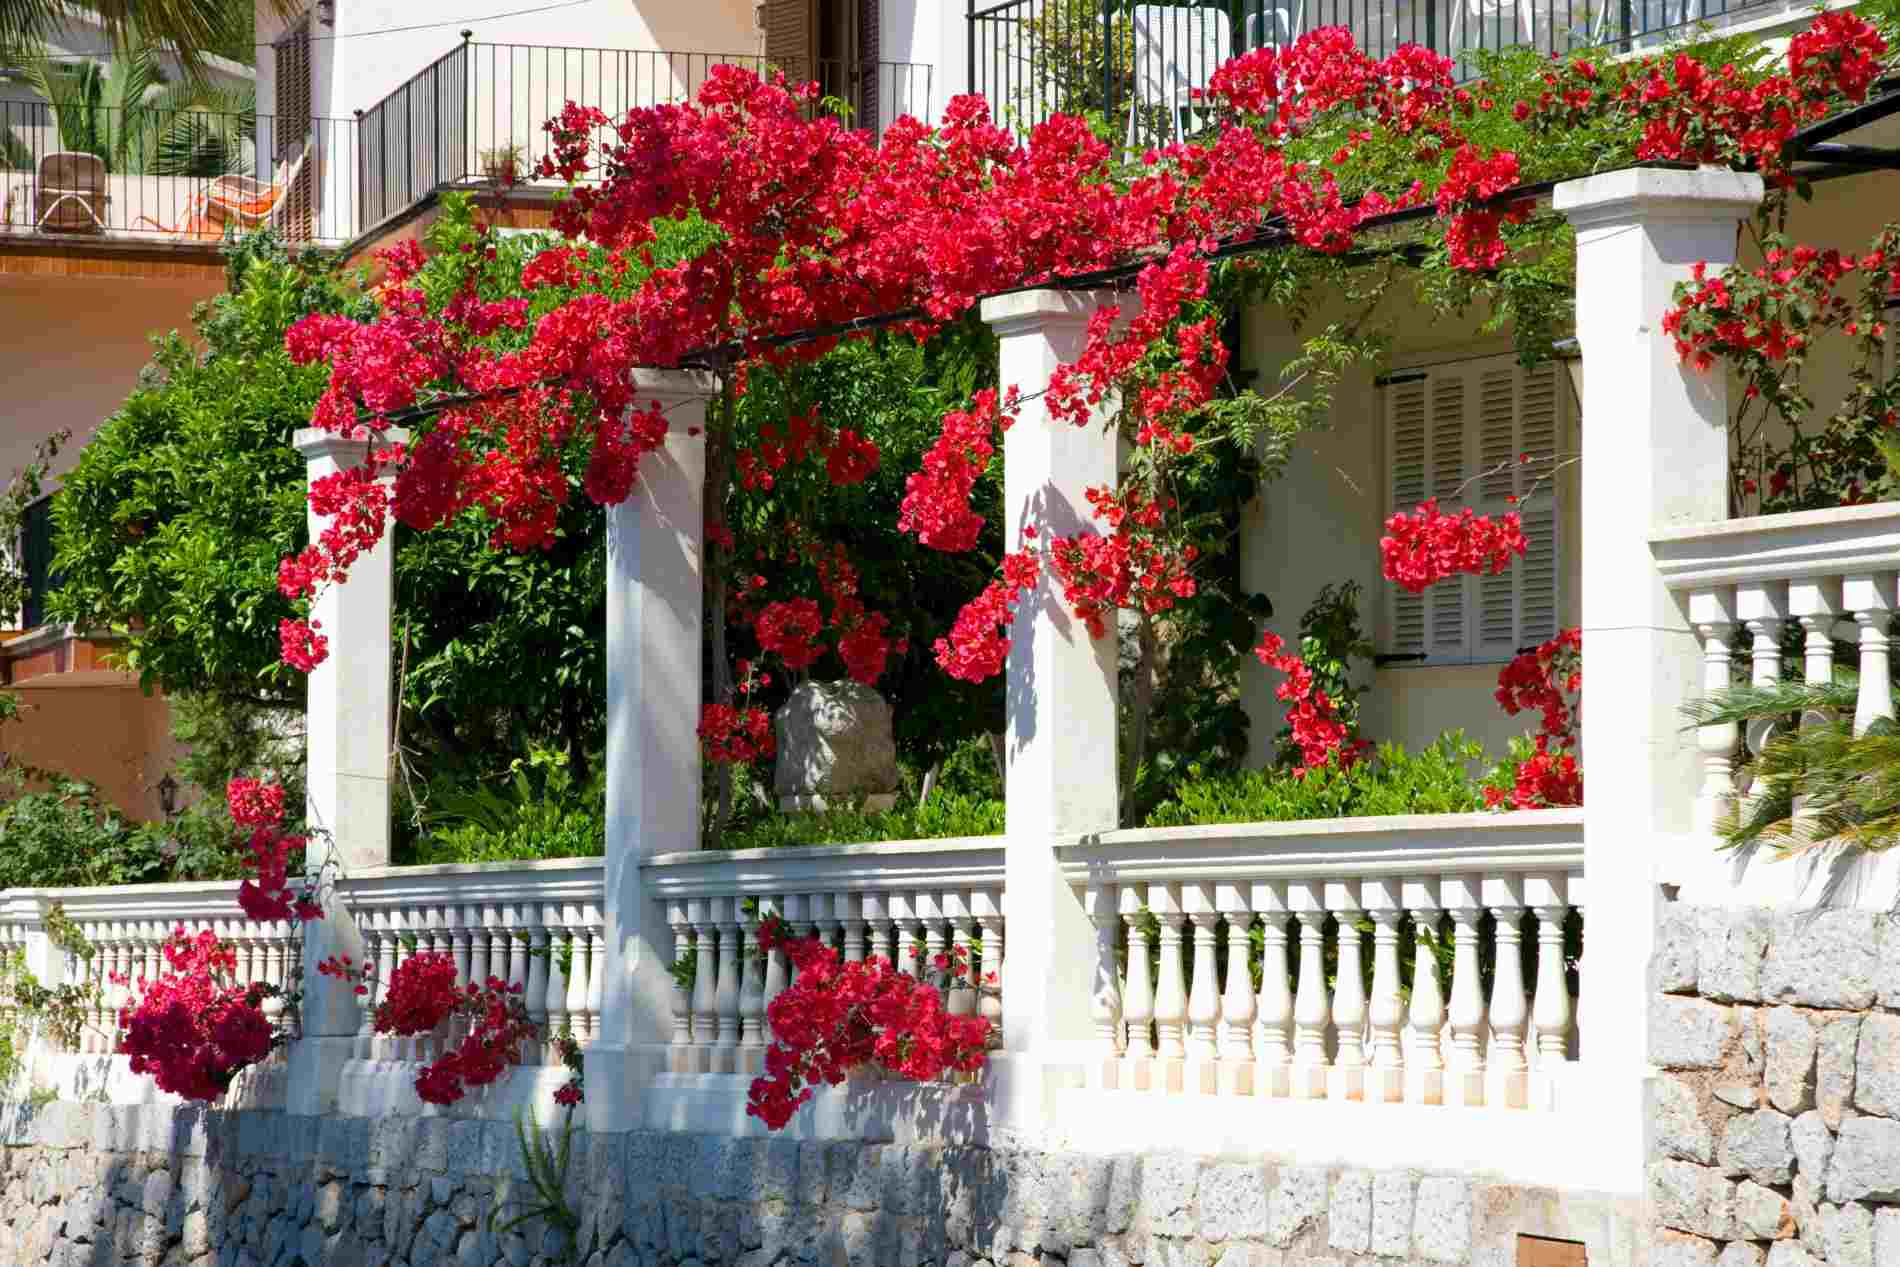 Bougainvillea on arbor and house.